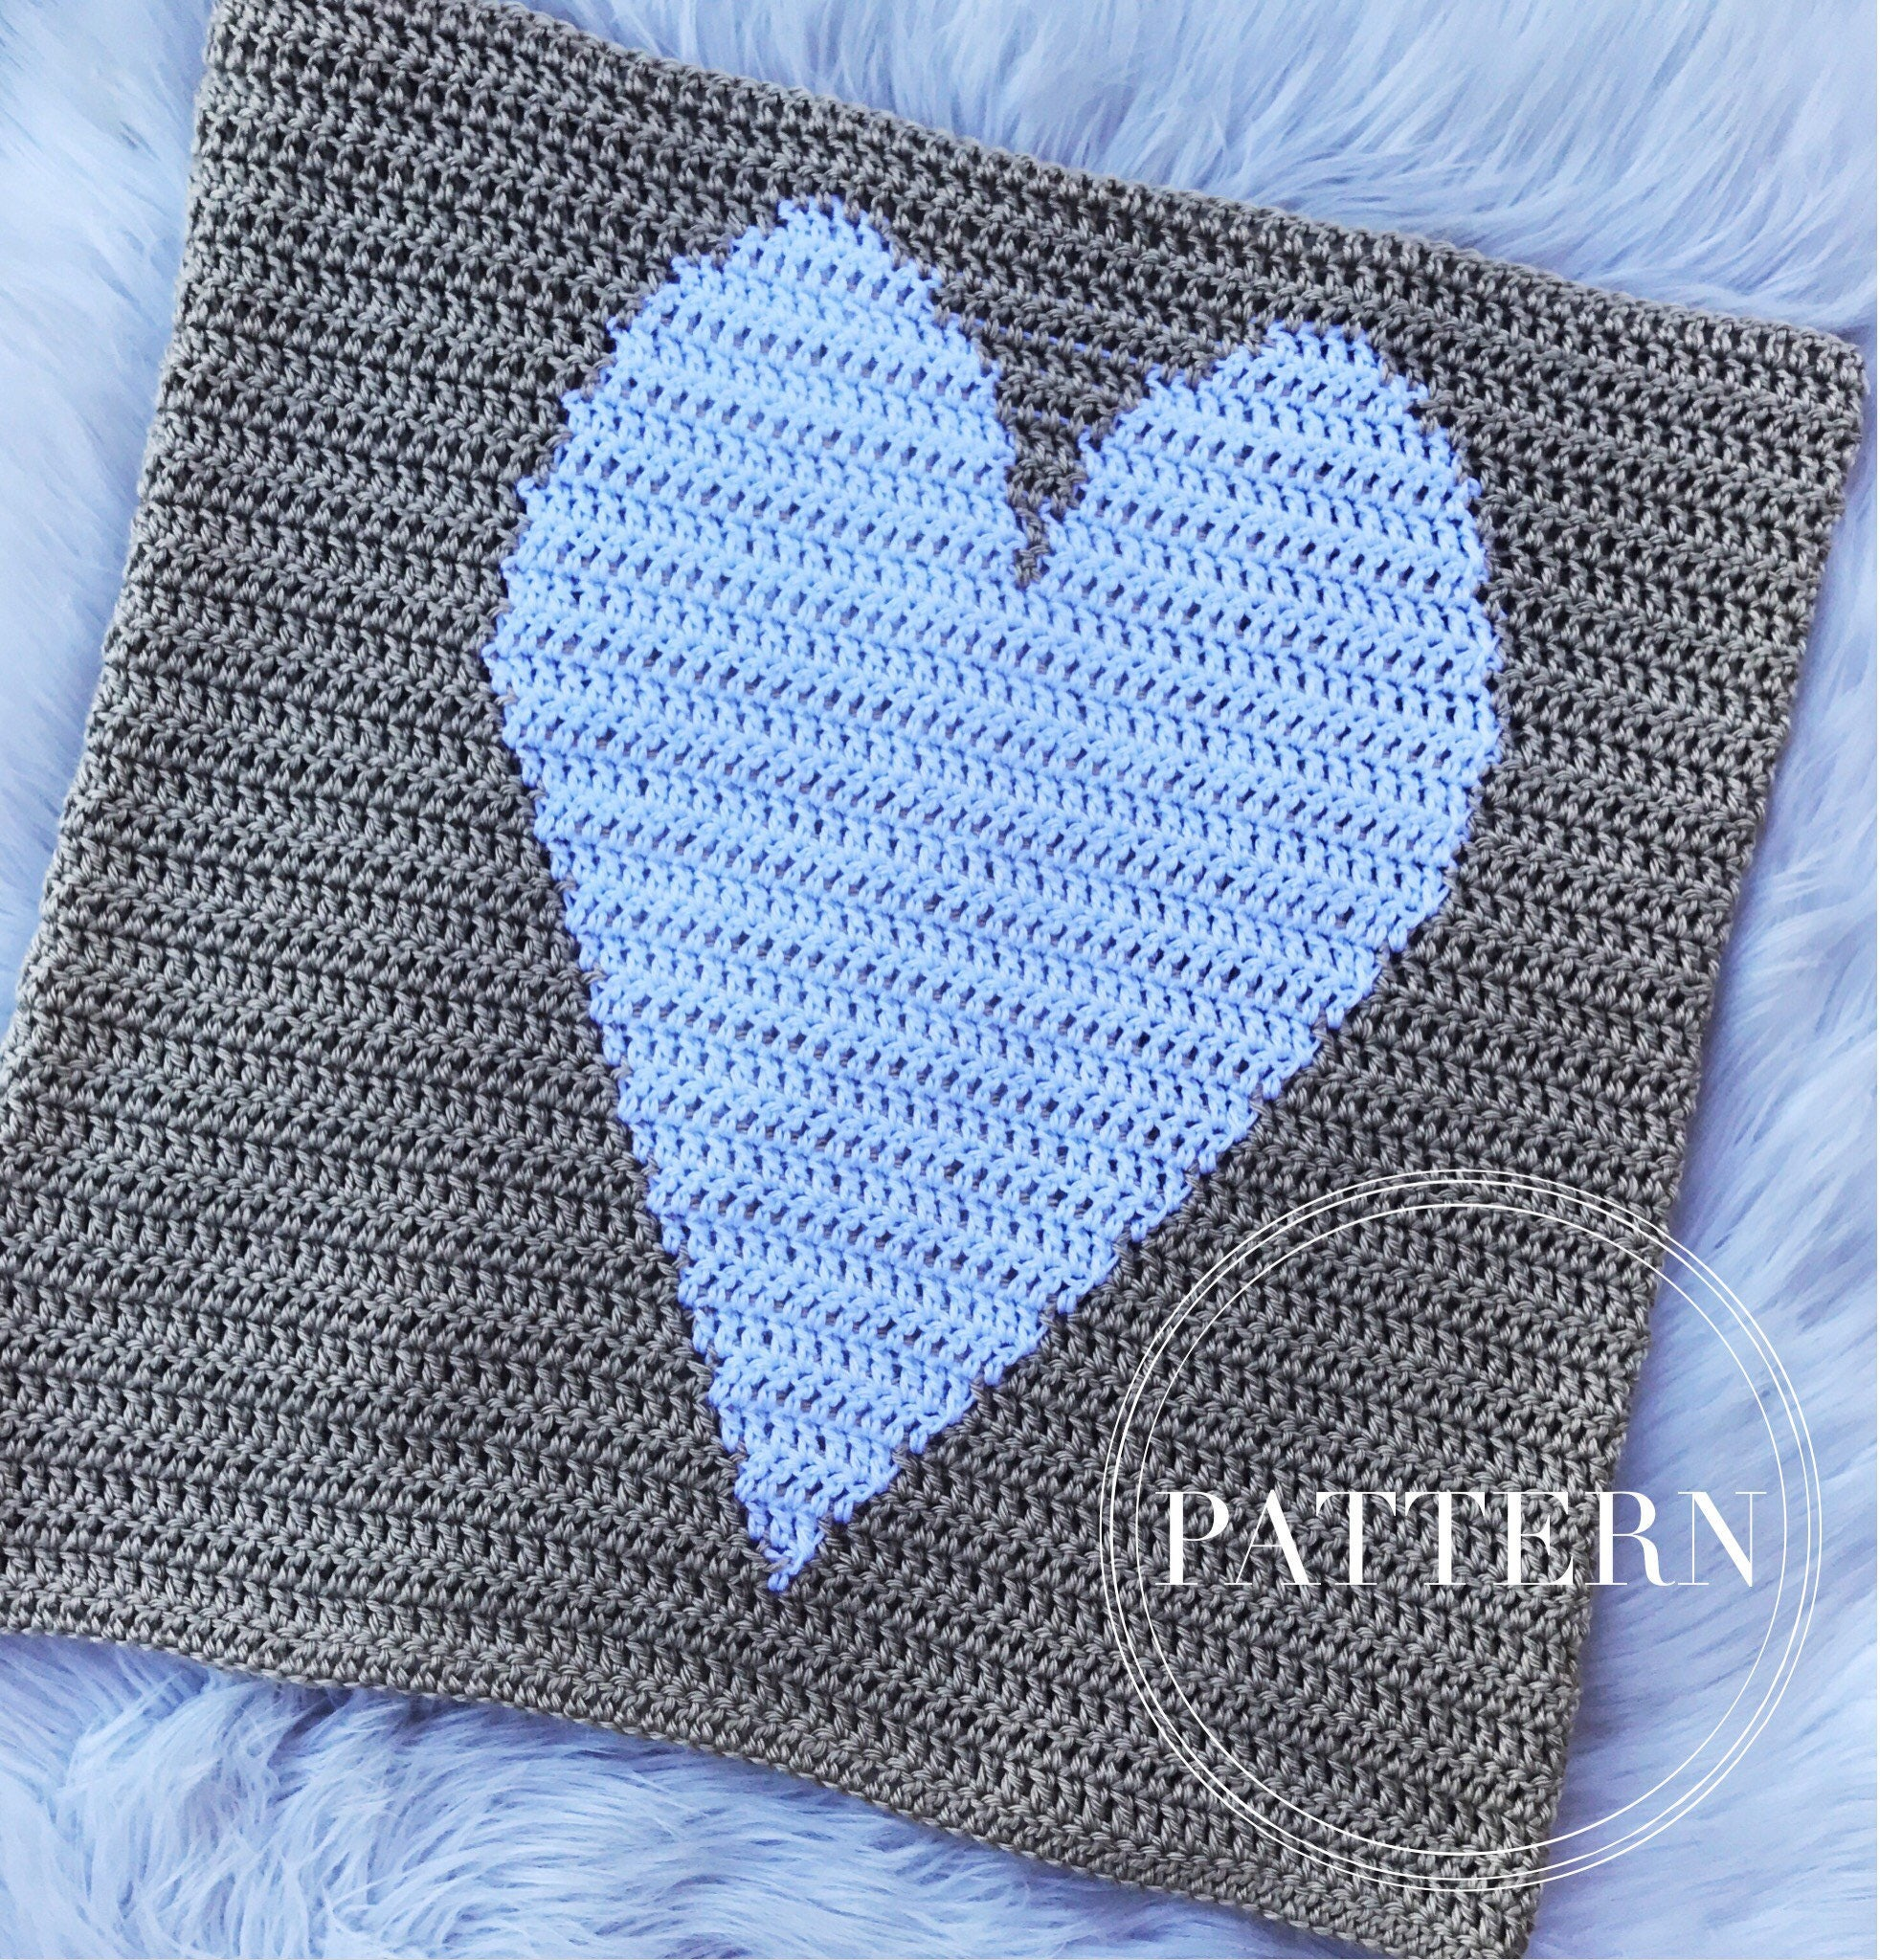 Crochet heart baby blanket pattern easy stroller blanket this is a digital file bankloansurffo Images